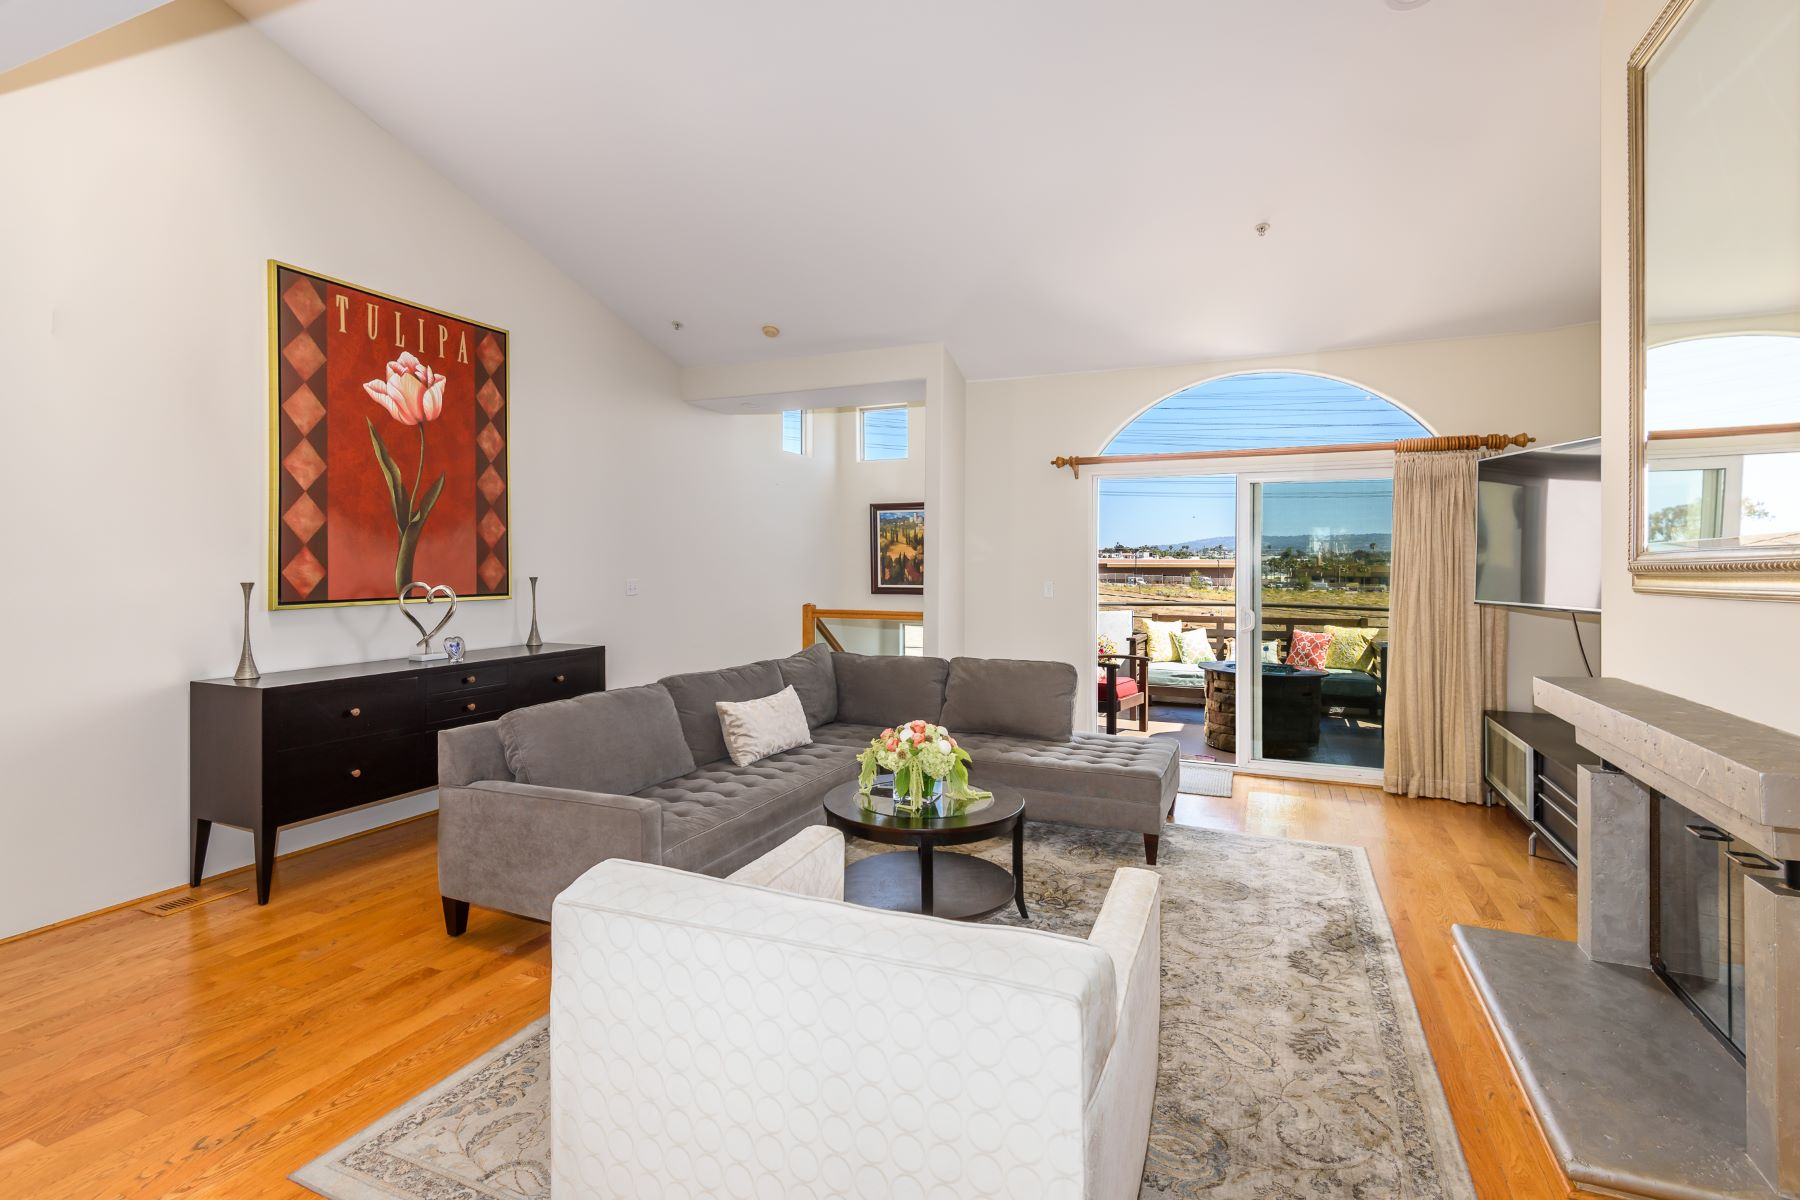 townhouses for Sale at 540 1st Street #6, Hermosa Beach, CA 90254 540 1st Street #6 Hermosa Beach, California 90254 United States